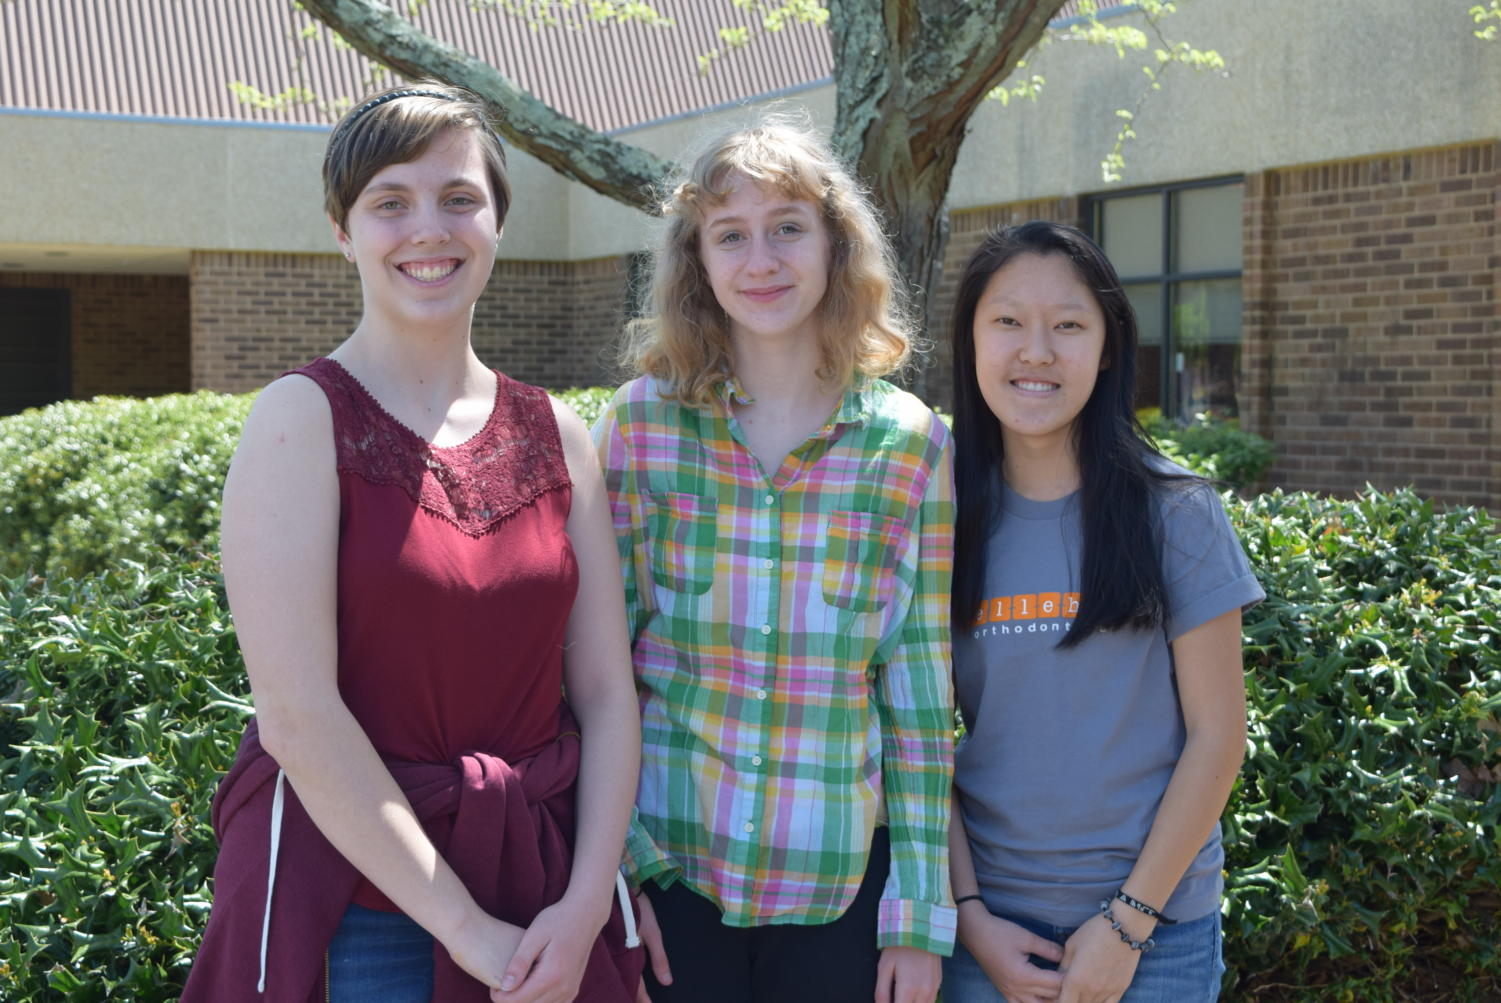 Halleigh Carson, Elizabeth Bolstad, Dareen Kang will attend the Governor's Residential Summer Academy for Language.